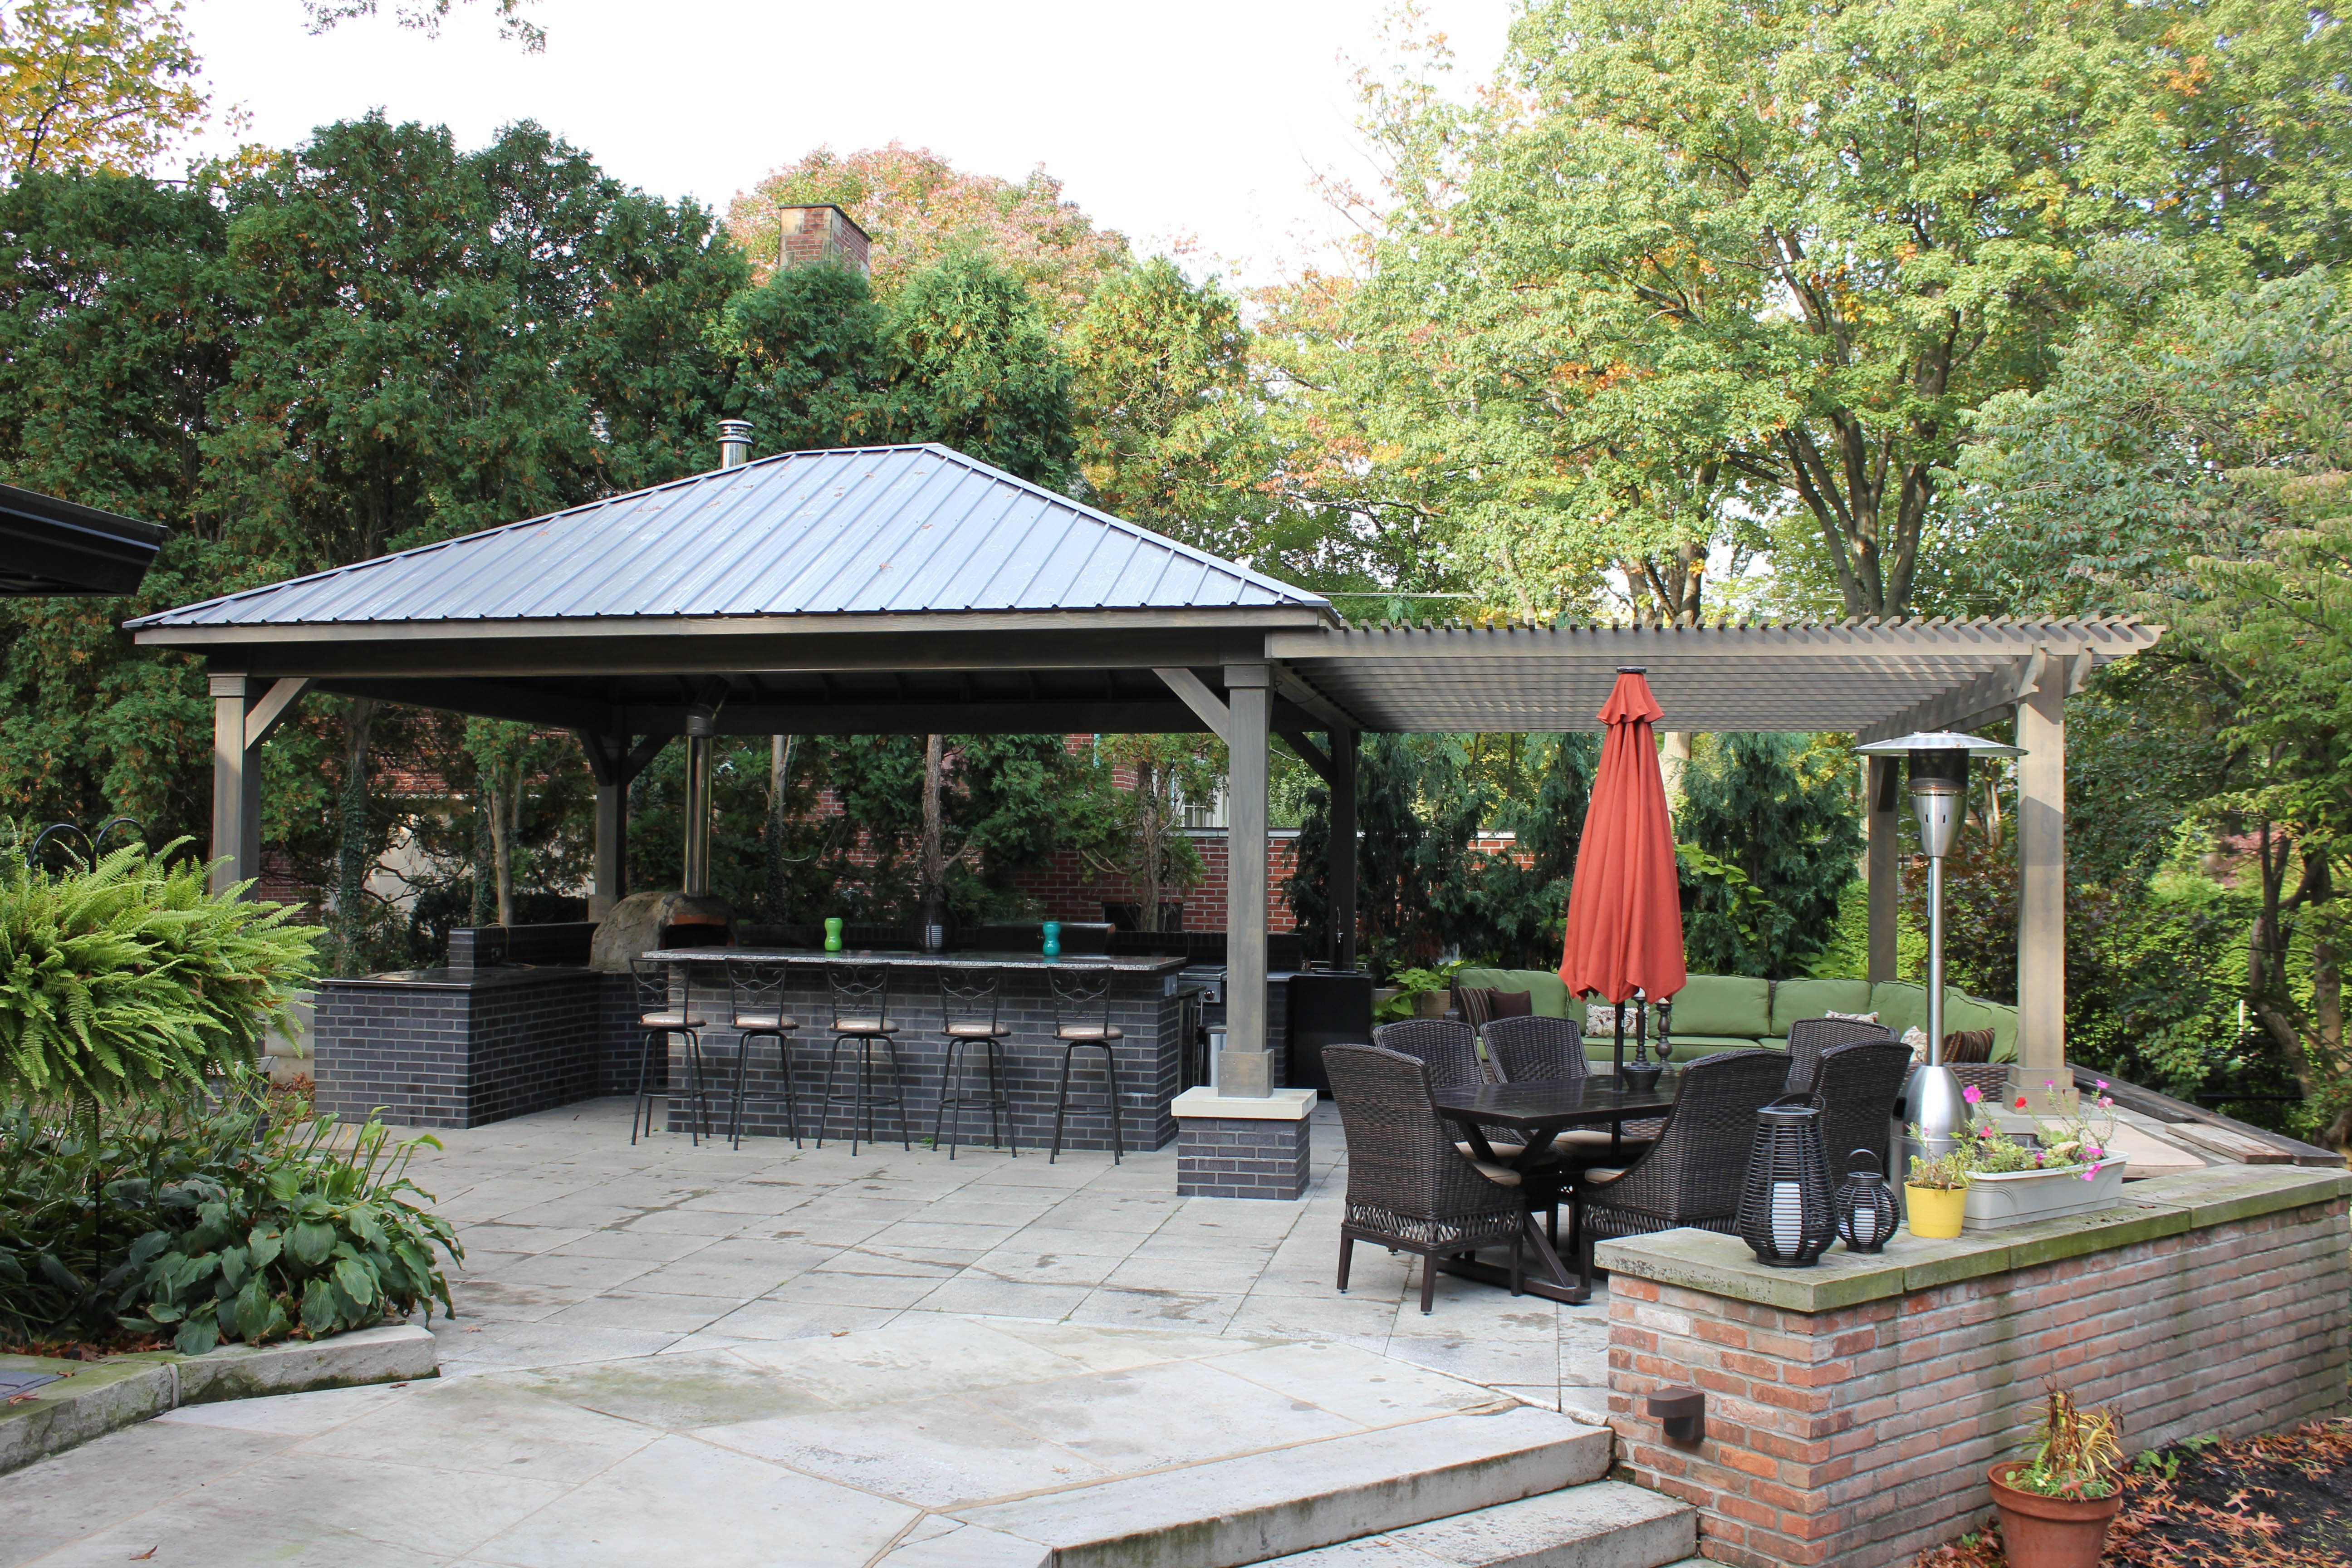 Another Custom Durango Pavilion From Berlin Gardens Combined With A BG  Pergola Makes This Backyard A